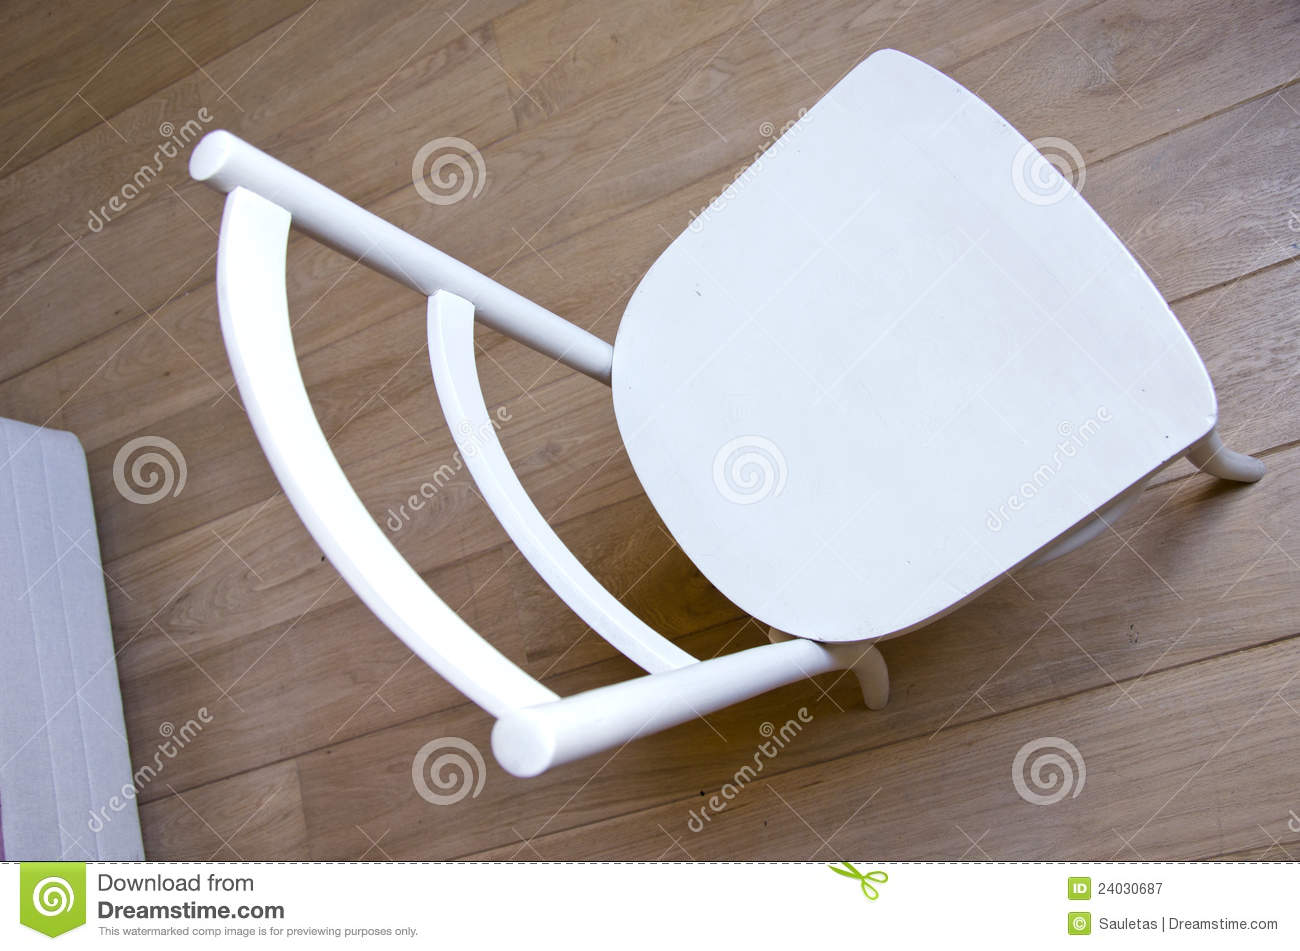 Chair Object Retro Paint White Stand Wooden Floor Royalty Free Stock Photogra